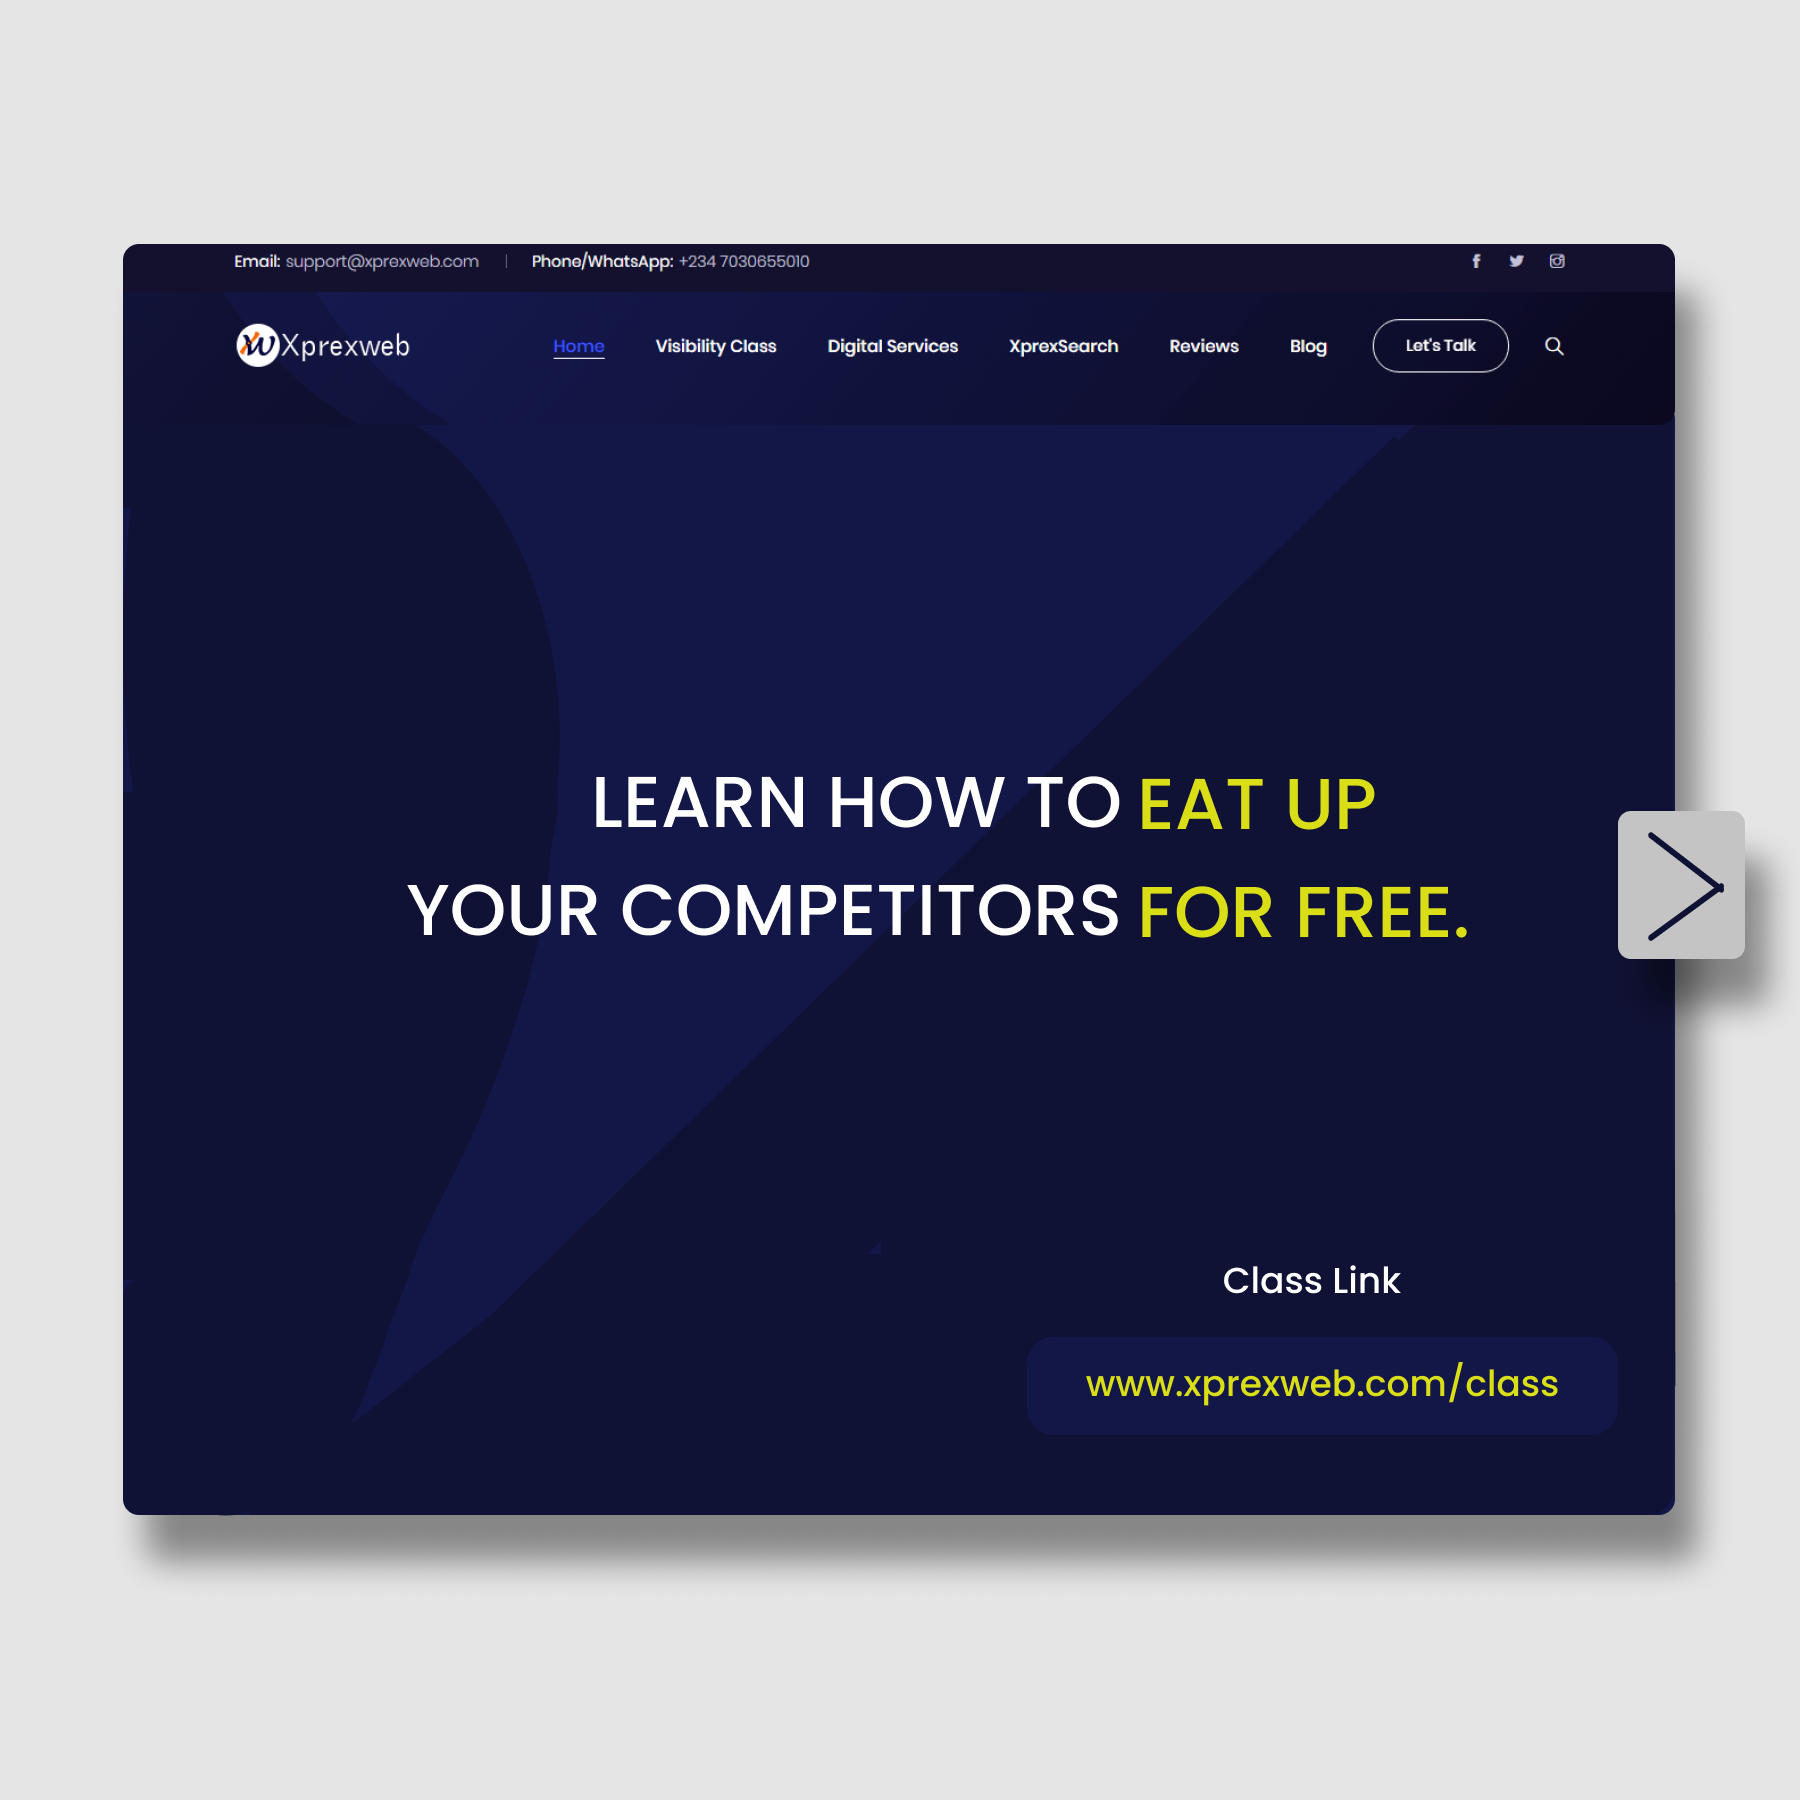 Xprexweb Free Training Review